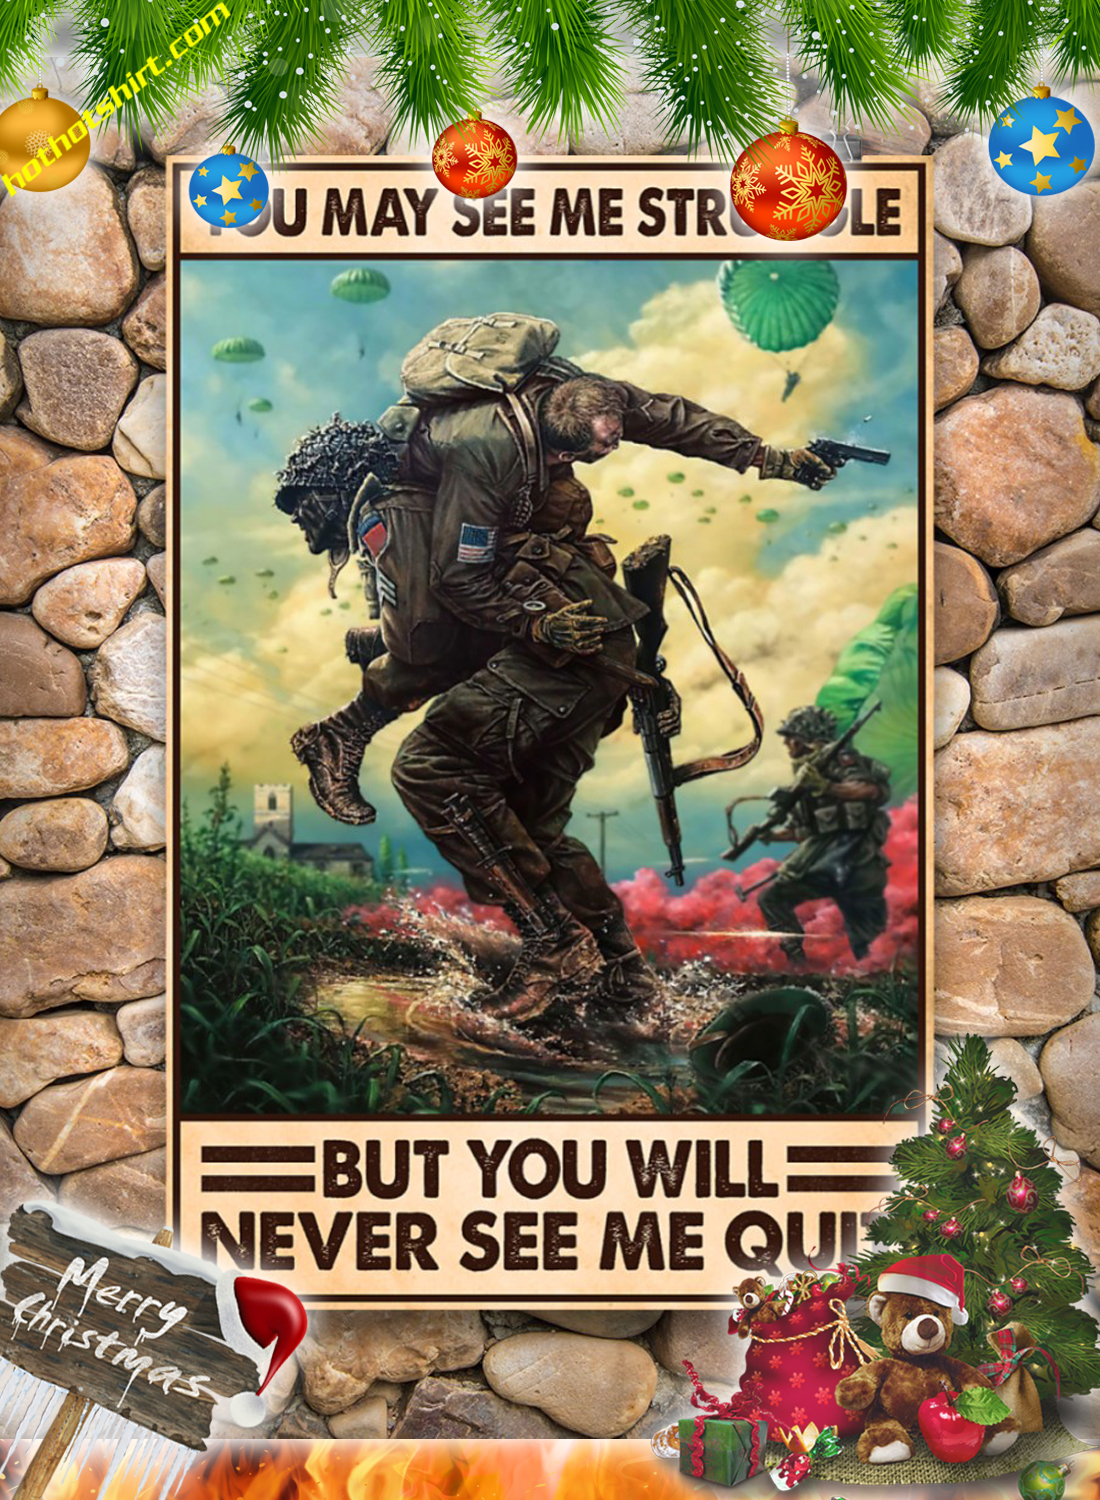 Veteran You may see me struggle but you will never see me quit poster 2